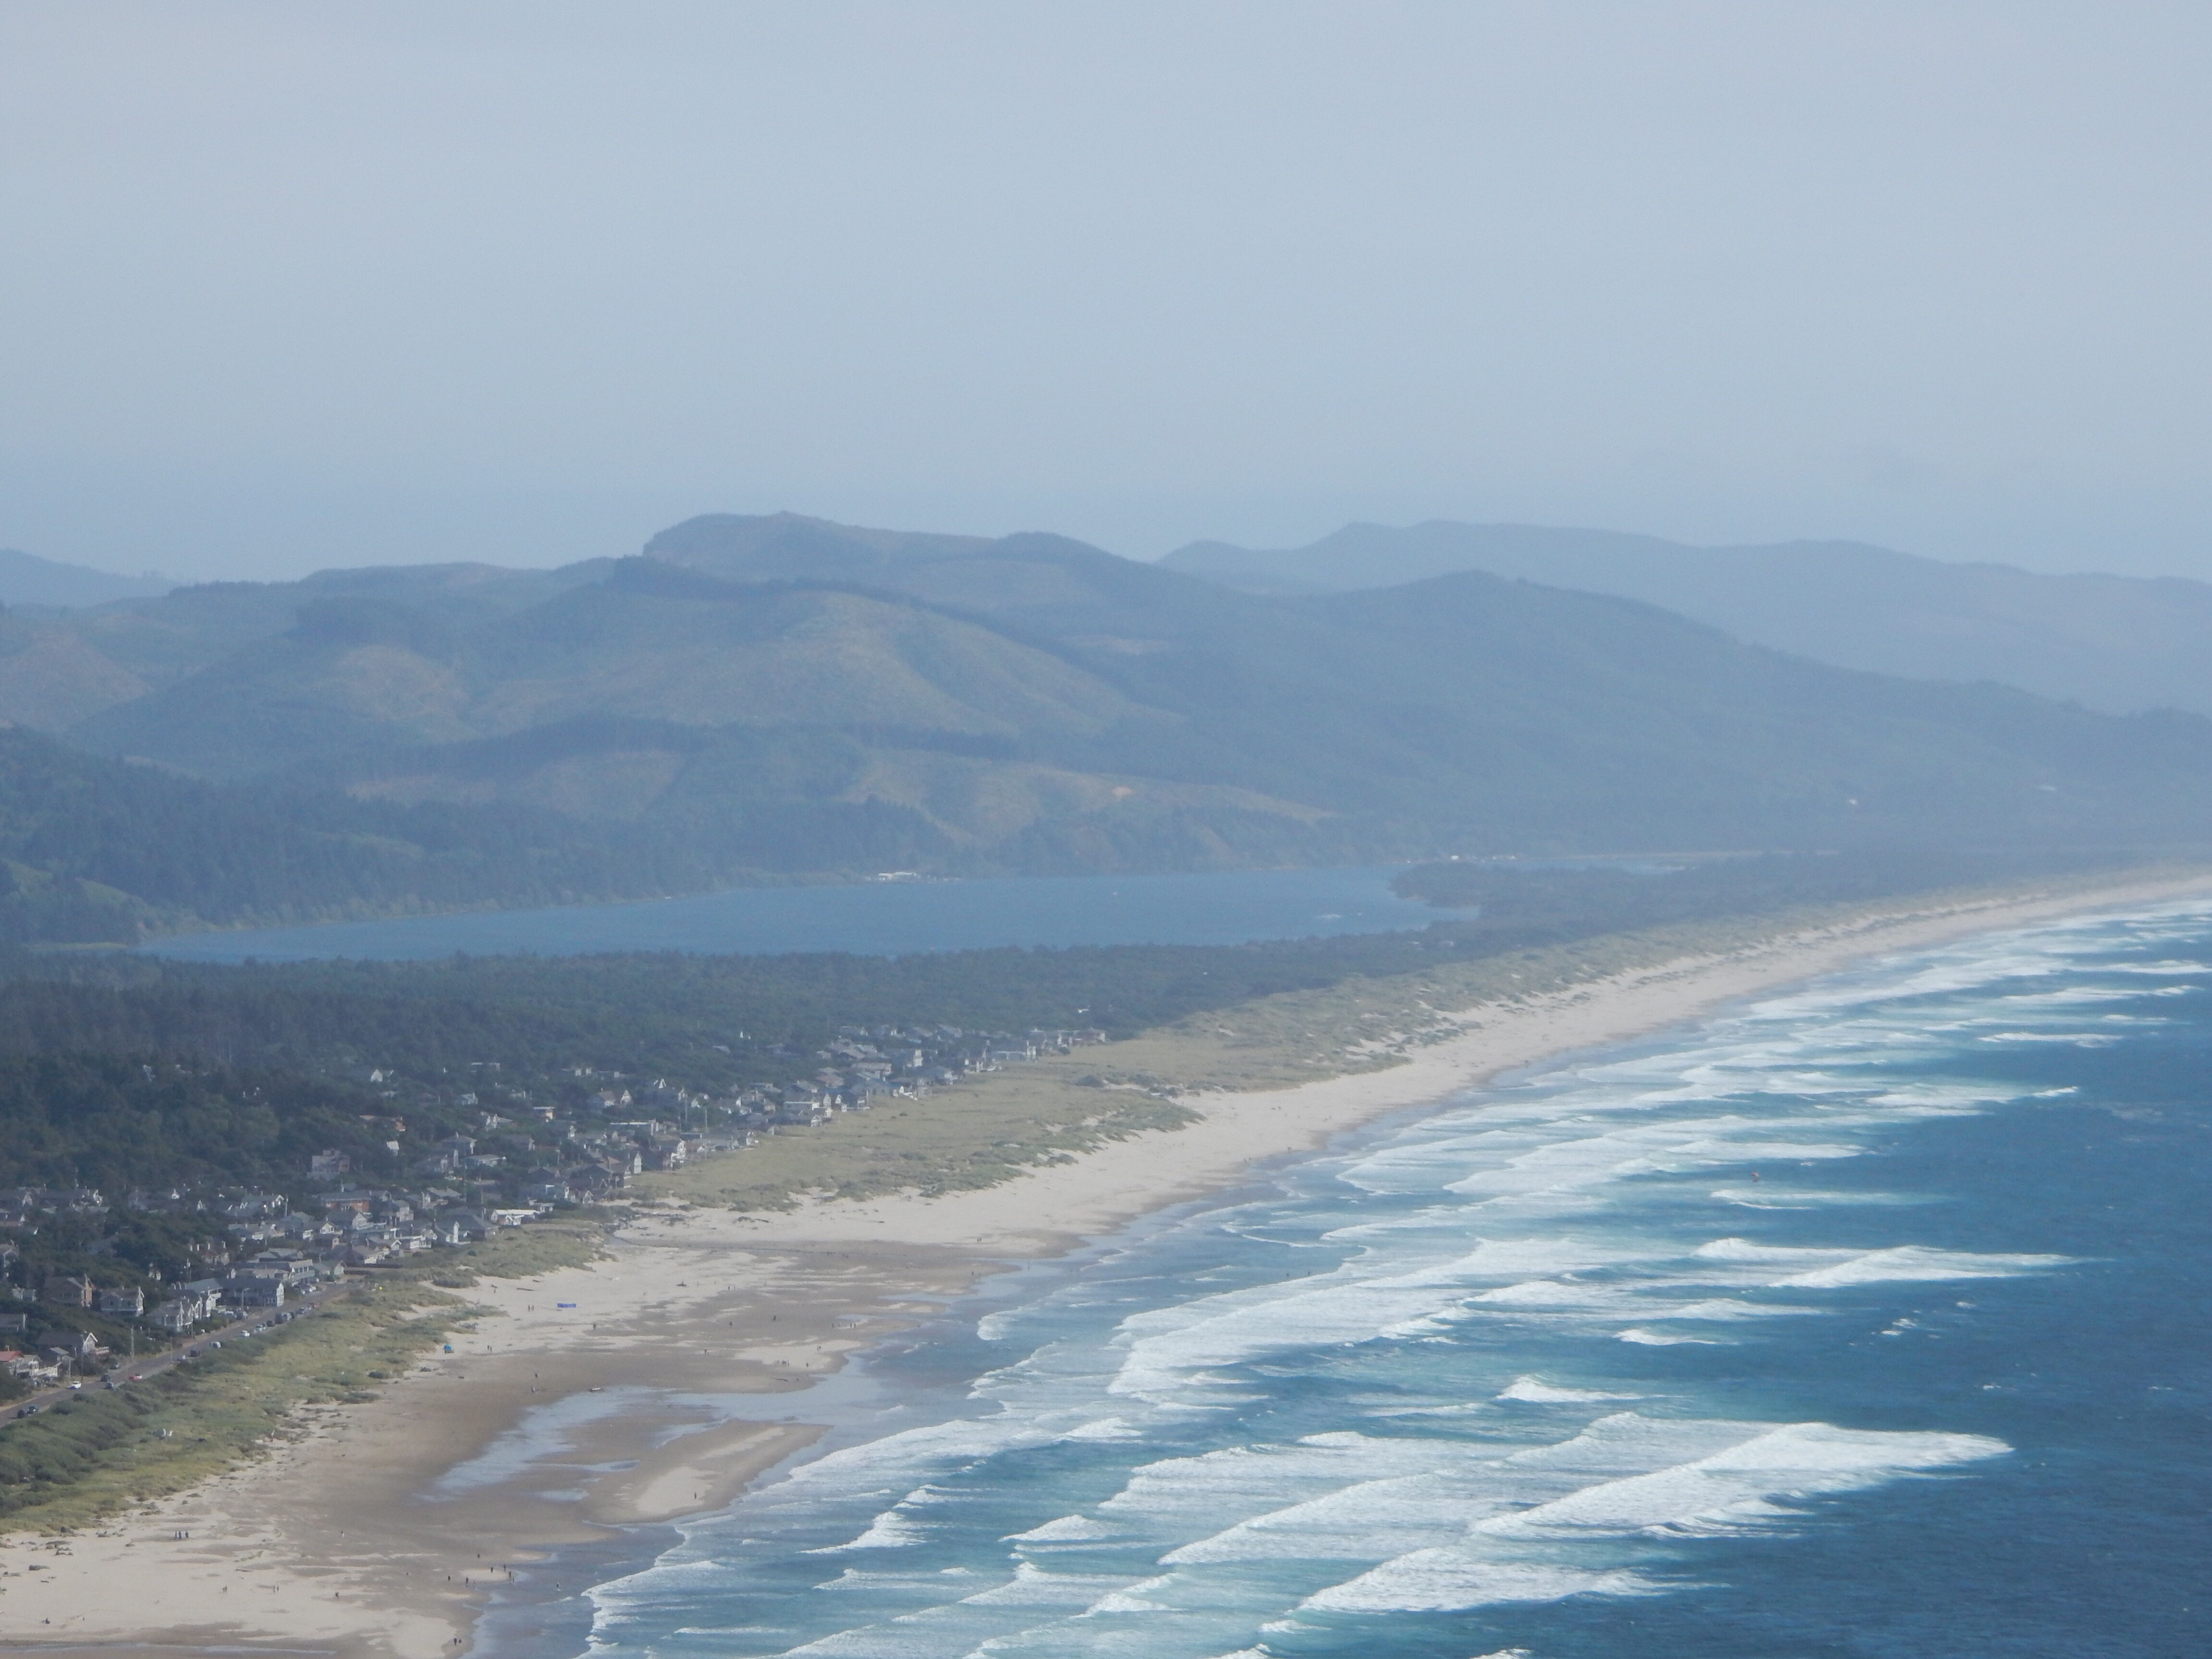 A view of the mouth of the Nehalem River from the south end of Oswald West State Park.